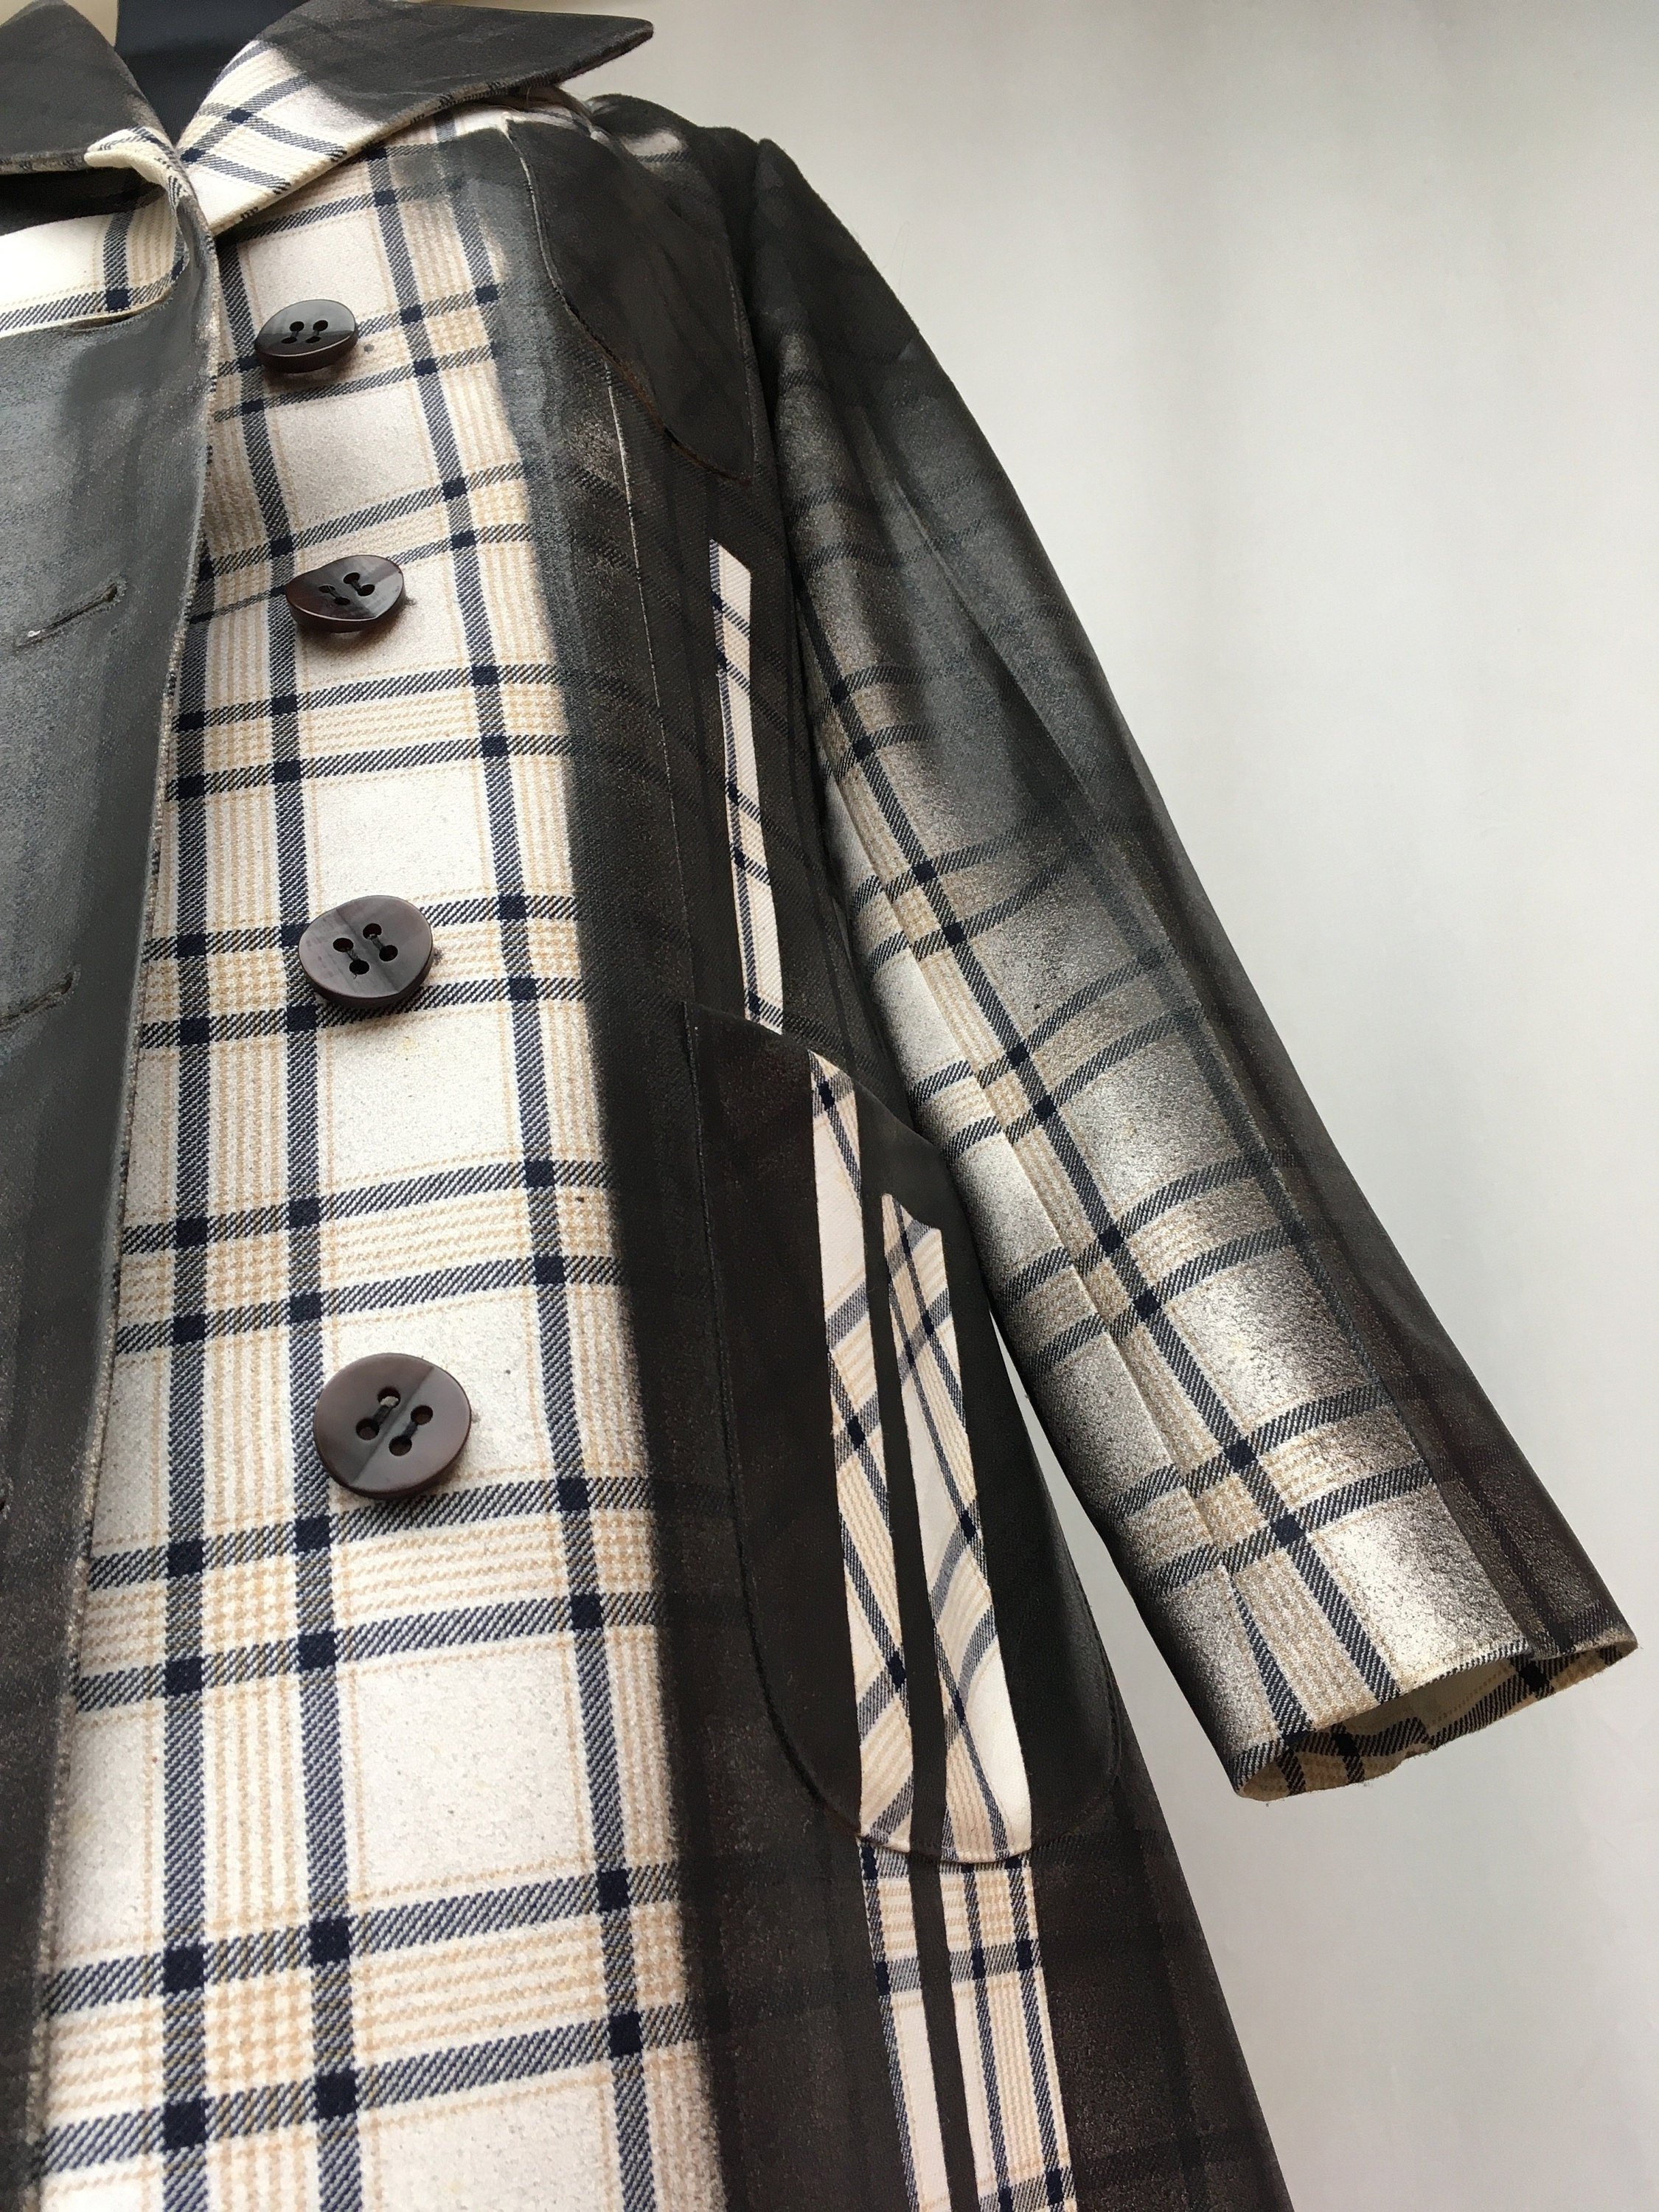 Coat lola darling SS19 Cruise #trenchcoat #loladarling #coat #ss19 #cheque #tartan #scozzese #gommato #rubberized #leathereffect